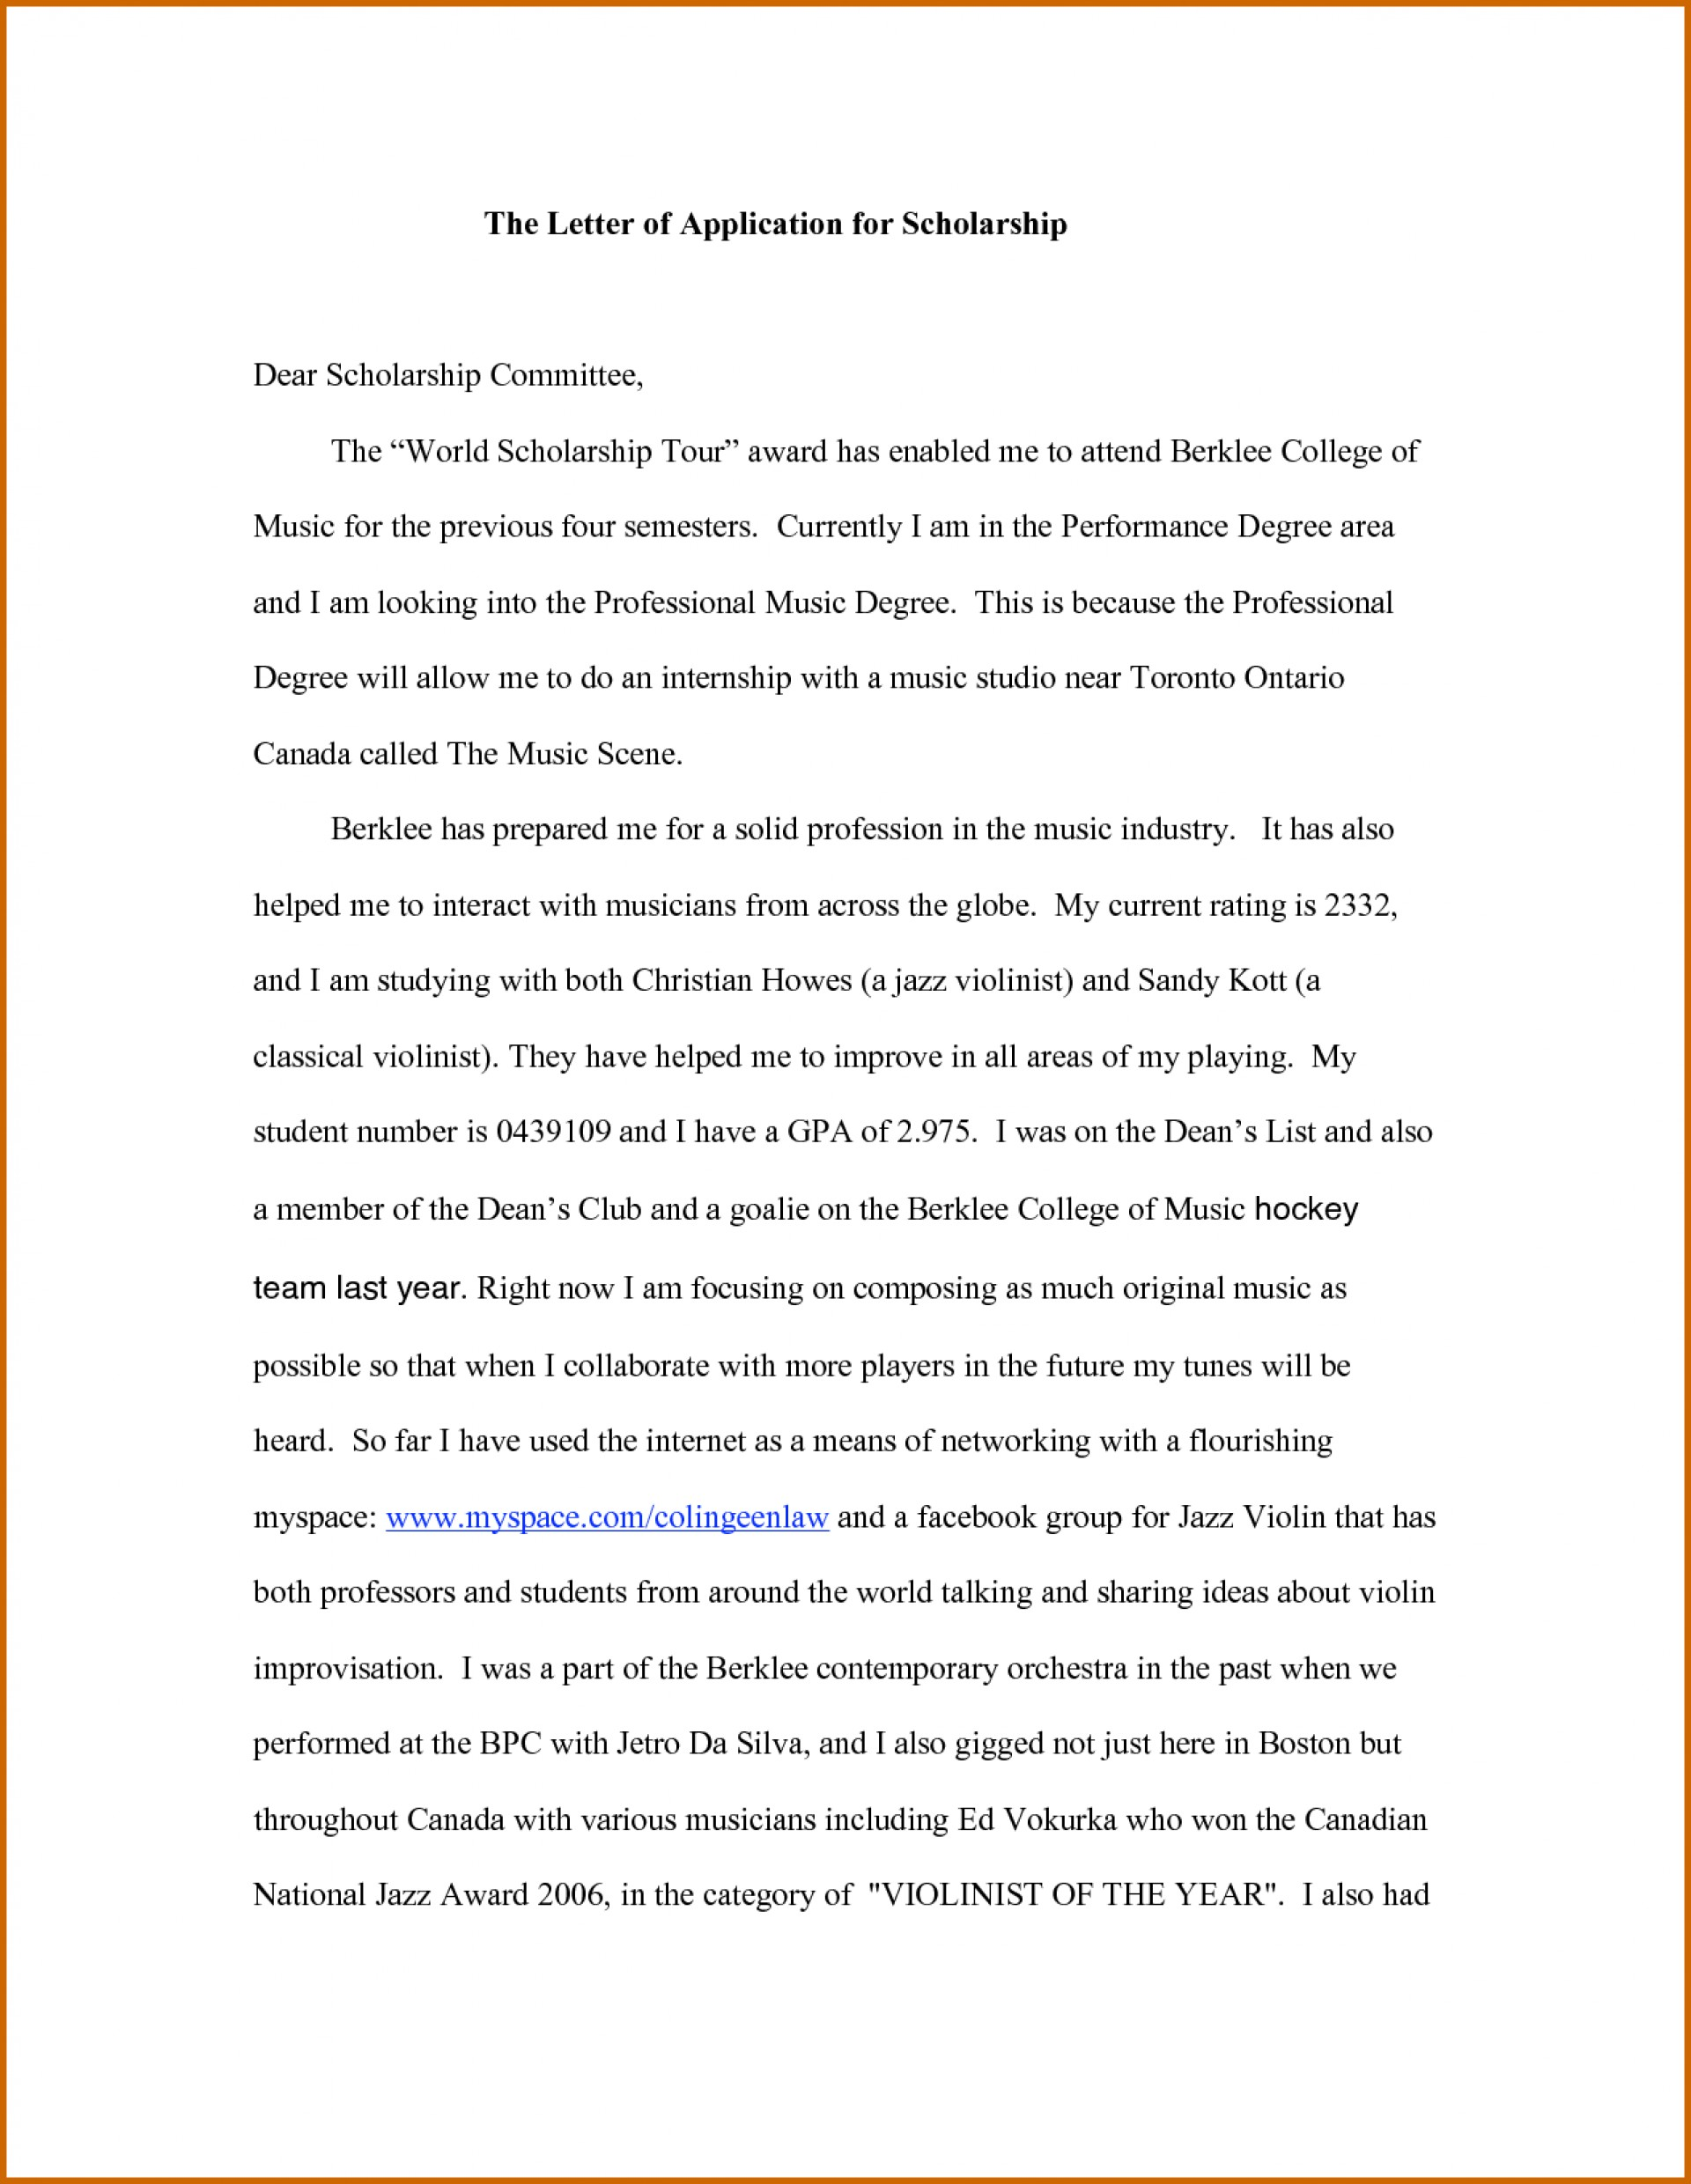 004 How To Write Scholarship Essay Example Me On Brexit Examples Who Am I Unbelievable A About Why You Deserve It Good Yourself Format 1920